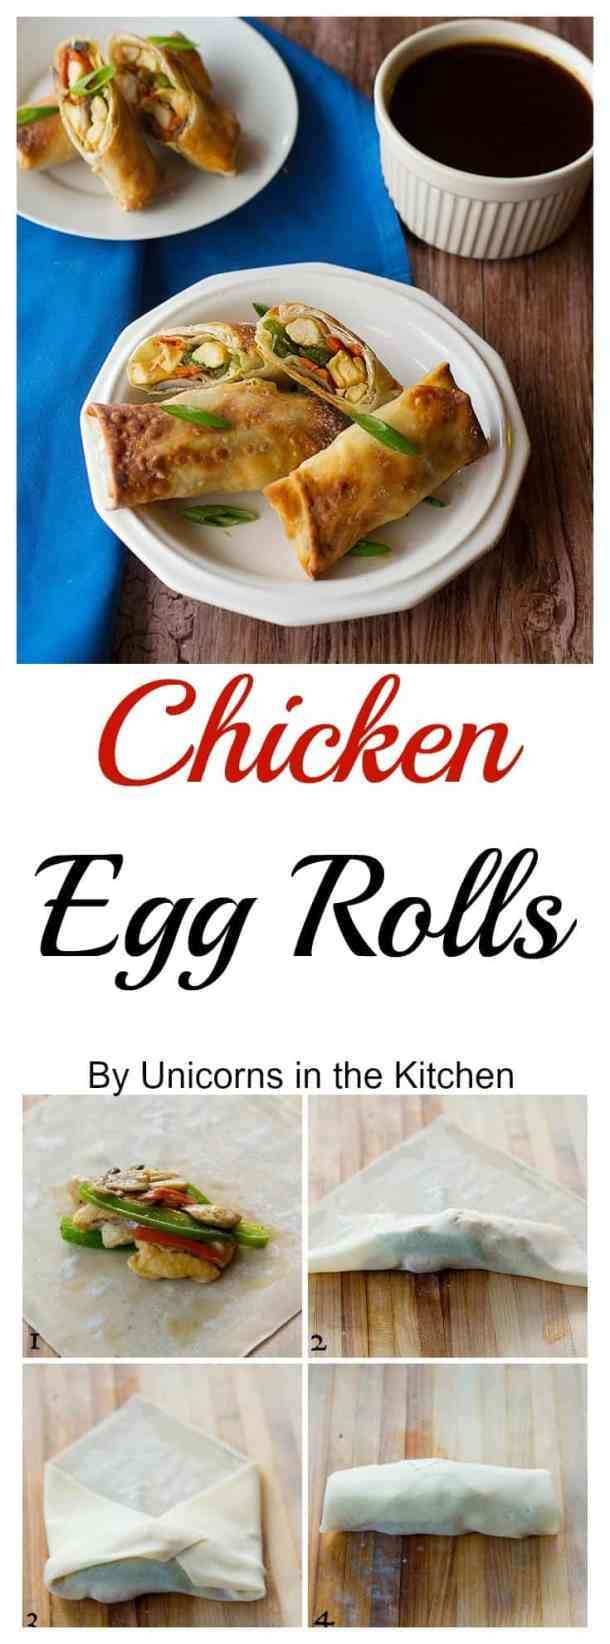 Delicious Egg Rolls that are baked instead of fried. Served with a sauce that keeps your diet balanced! Deliciousness without the guilt!